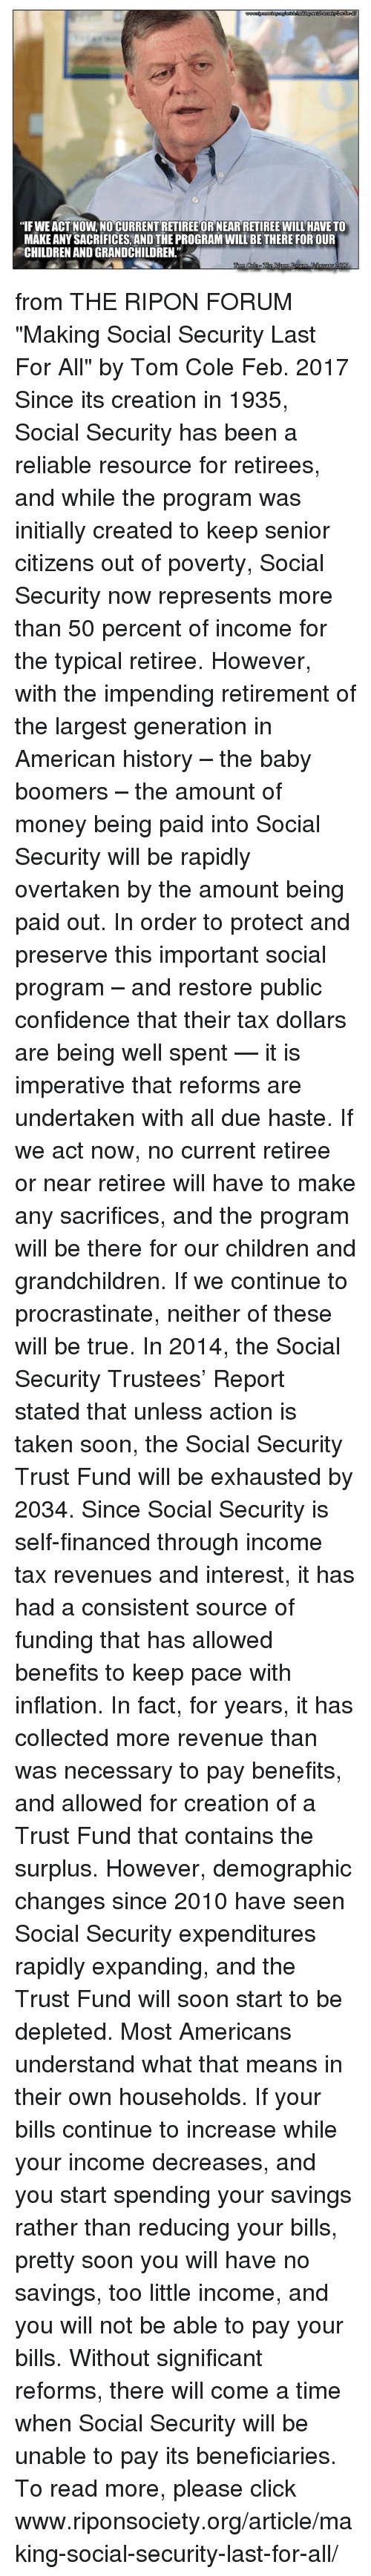 """Procrastining: """"IFWEACT NOW NO CURRENTRETIREE OR NEARRETIREE WILL HAVE TO  MAKE ANY SACRIFICES, AND THE PROGRAM WILL BETHERE FOR OUR  CHILDRENANDGRANDCHILDREN""""  Lorri from THE RIPON FORUM """"Making Social Security Last For All"""" by Tom Cole Feb. 2017  Since its creation in 1935, Social Security has been a reliable resource for retirees, and while the program was initially created to keep senior citizens out of poverty, Social Security now represents more than 50 percent of income for the typical retiree.  However, with the impending retirement of the largest generation in American history – the baby boomers – the amount of money being paid into Social Security will be rapidly overtaken by the amount being paid out.  In order to protect and preserve this important social program – and restore public confidence that their tax dollars are being well spent — it is imperative that reforms are undertaken with all due haste. If we act now, no current retiree or near retiree will have to make any sacrifices, and the program will be there for our children and grandchildren. If we continue to procrastinate, neither of these will be true.  In 2014, the Social Security Trustees' Report stated that unless action is taken soon, the Social Security Trust Fund will be exhausted by 2034. Since Social Security is self-financed through income tax revenues and interest, it has had a consistent source of funding that has allowed benefits to keep pace with inflation. In fact, for years, it has collected more revenue than was necessary to pay benefits, and allowed for creation of a Trust Fund that contains the surplus.  However, demographic changes since 2010 have seen Social Security expenditures rapidly expanding, and the Trust Fund will soon start to be depleted.  Most Americans understand what that means in their own households. If your bills continue to increase while your income decreases, and you start spending your savings rather than reducing your bills, pretty soon you will have no"""